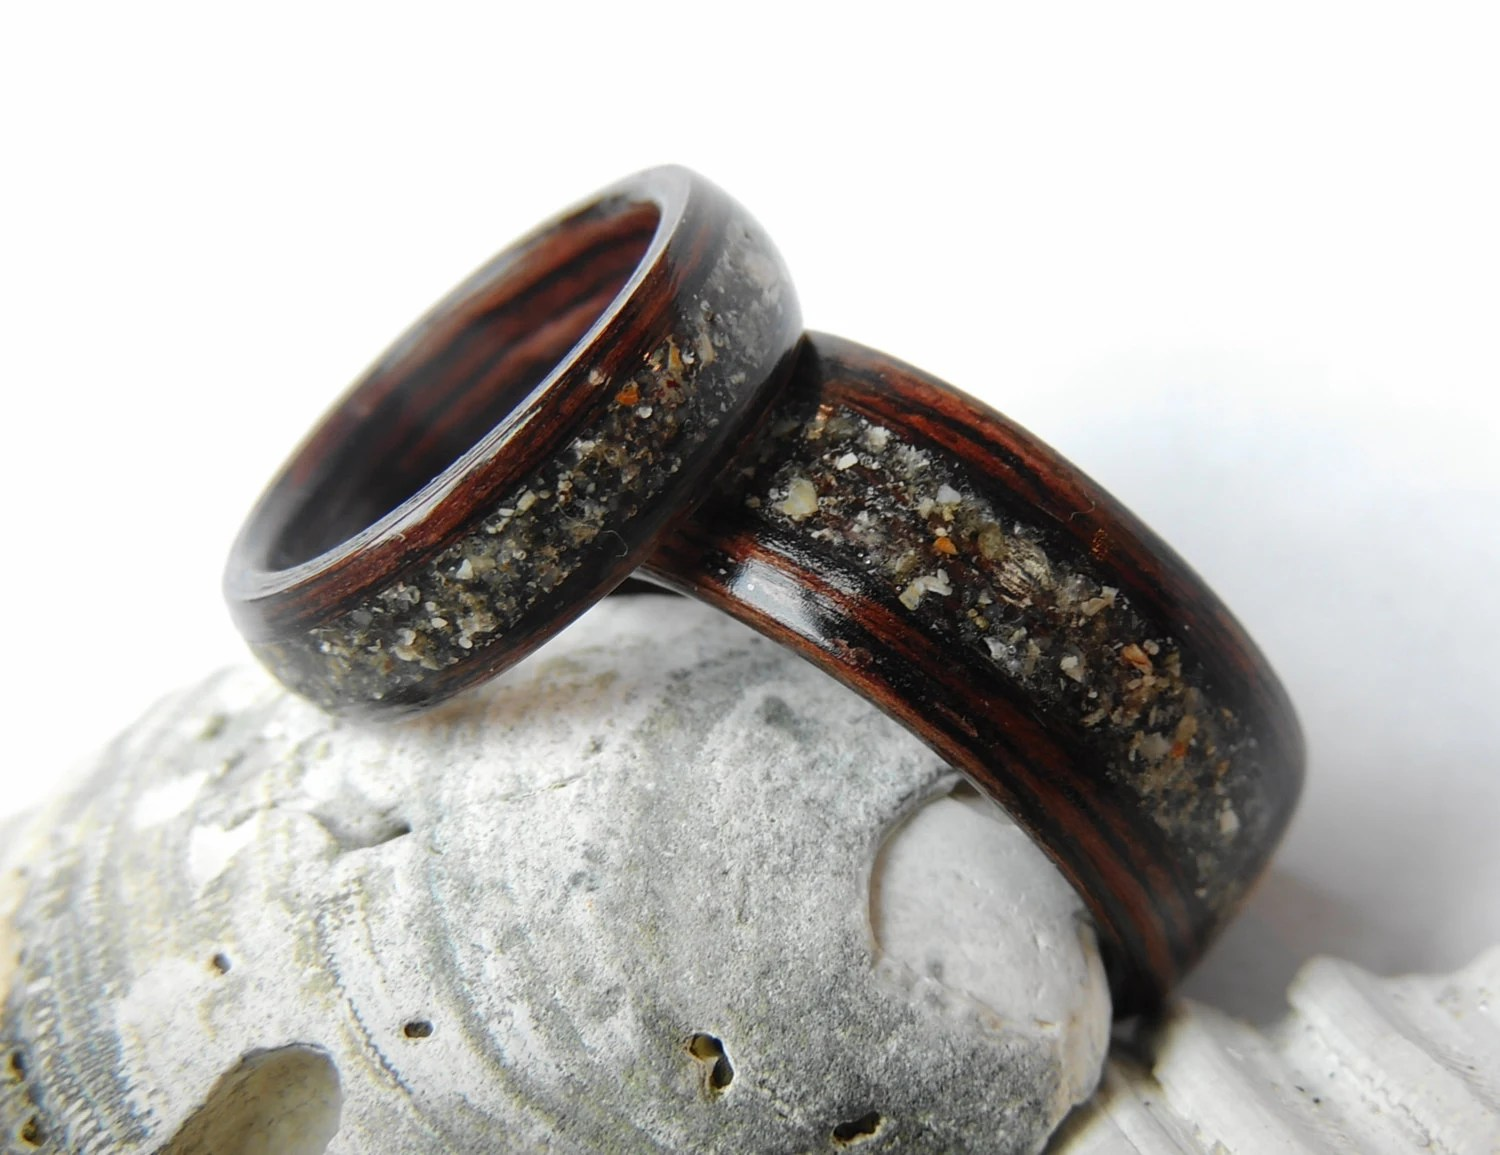 wooden wedding band wooden wedding bands Bentwood Wenge and Beach Sand Wedding Band Set Non Metal Wooden Rings Wood Jewelry